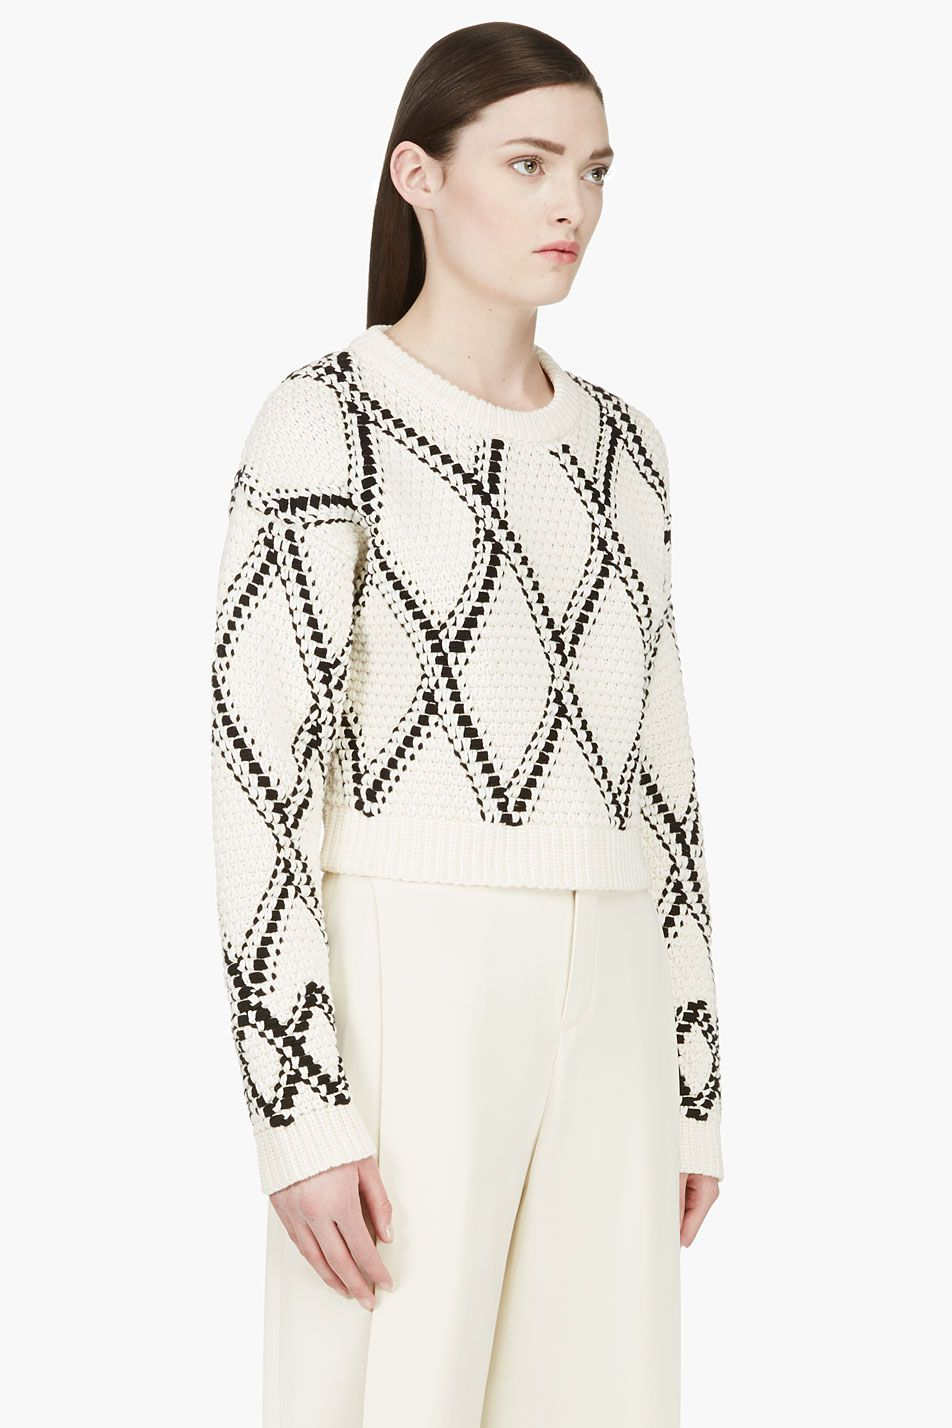 PROENZA SCHOULER Cream & Black Handwoven Cropped Sweater | Knits ...